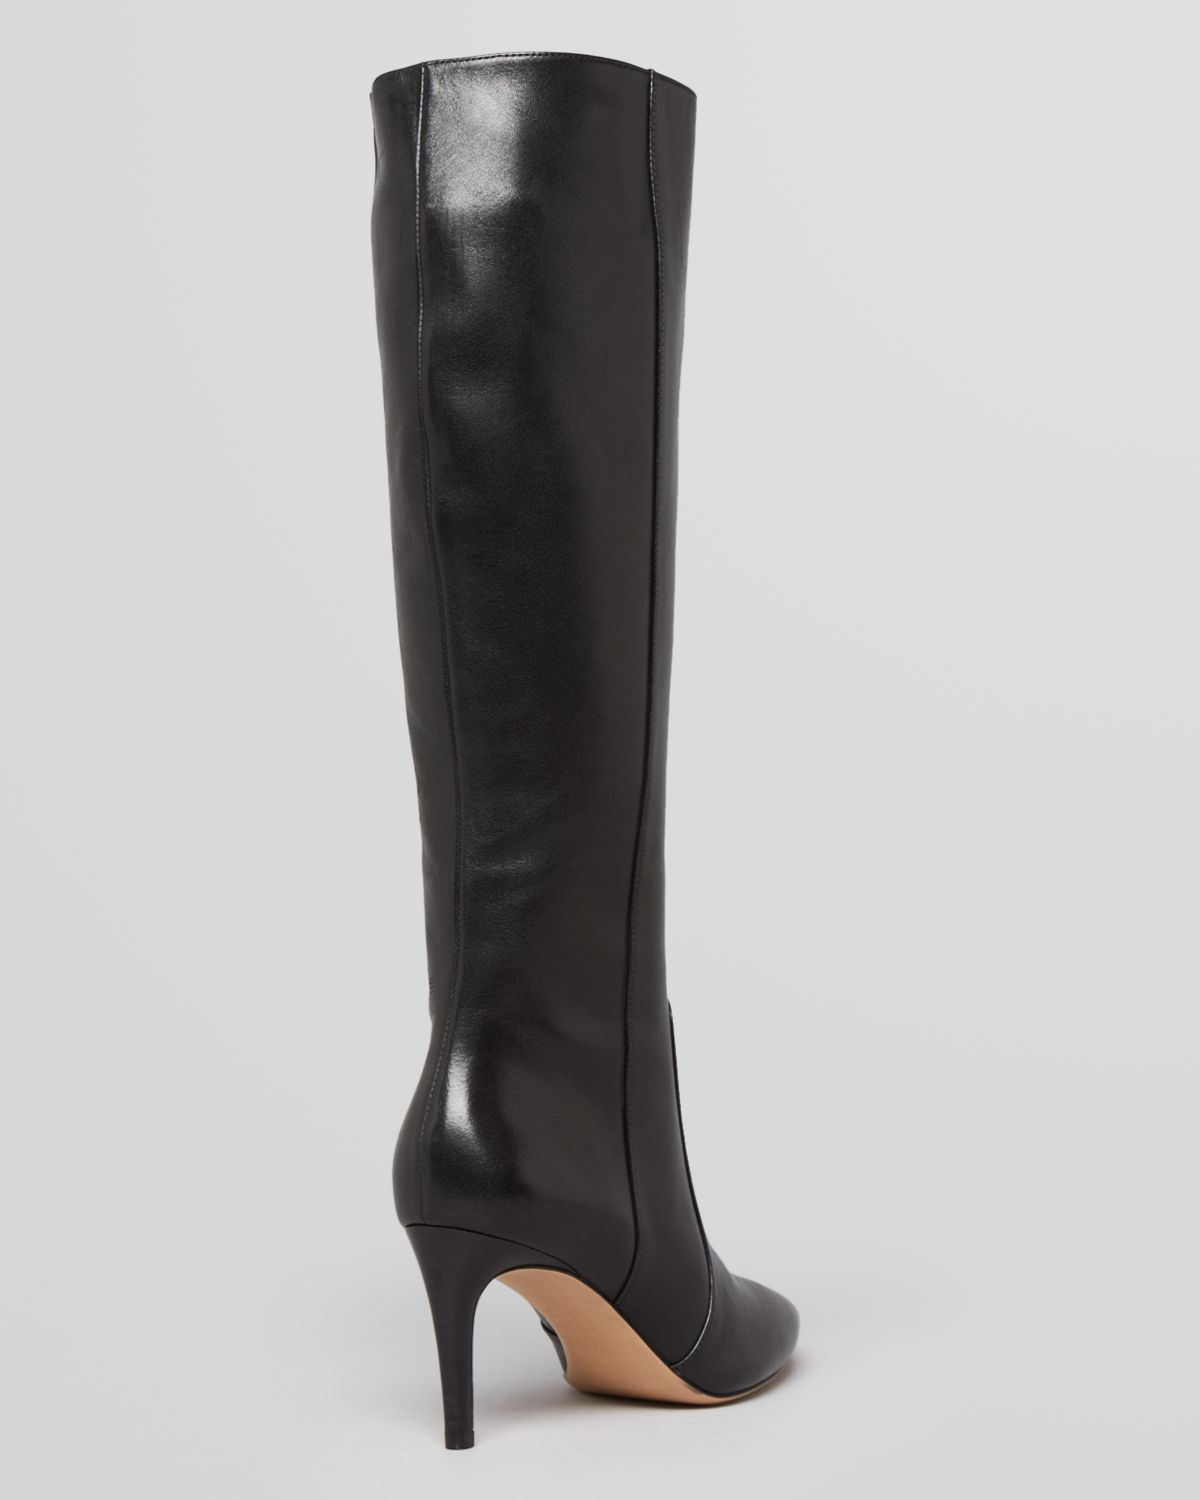 13bea889375 Via Spiga Pointed Toe Tall Dress Boots Dacia High Heel in Brown - Lyst